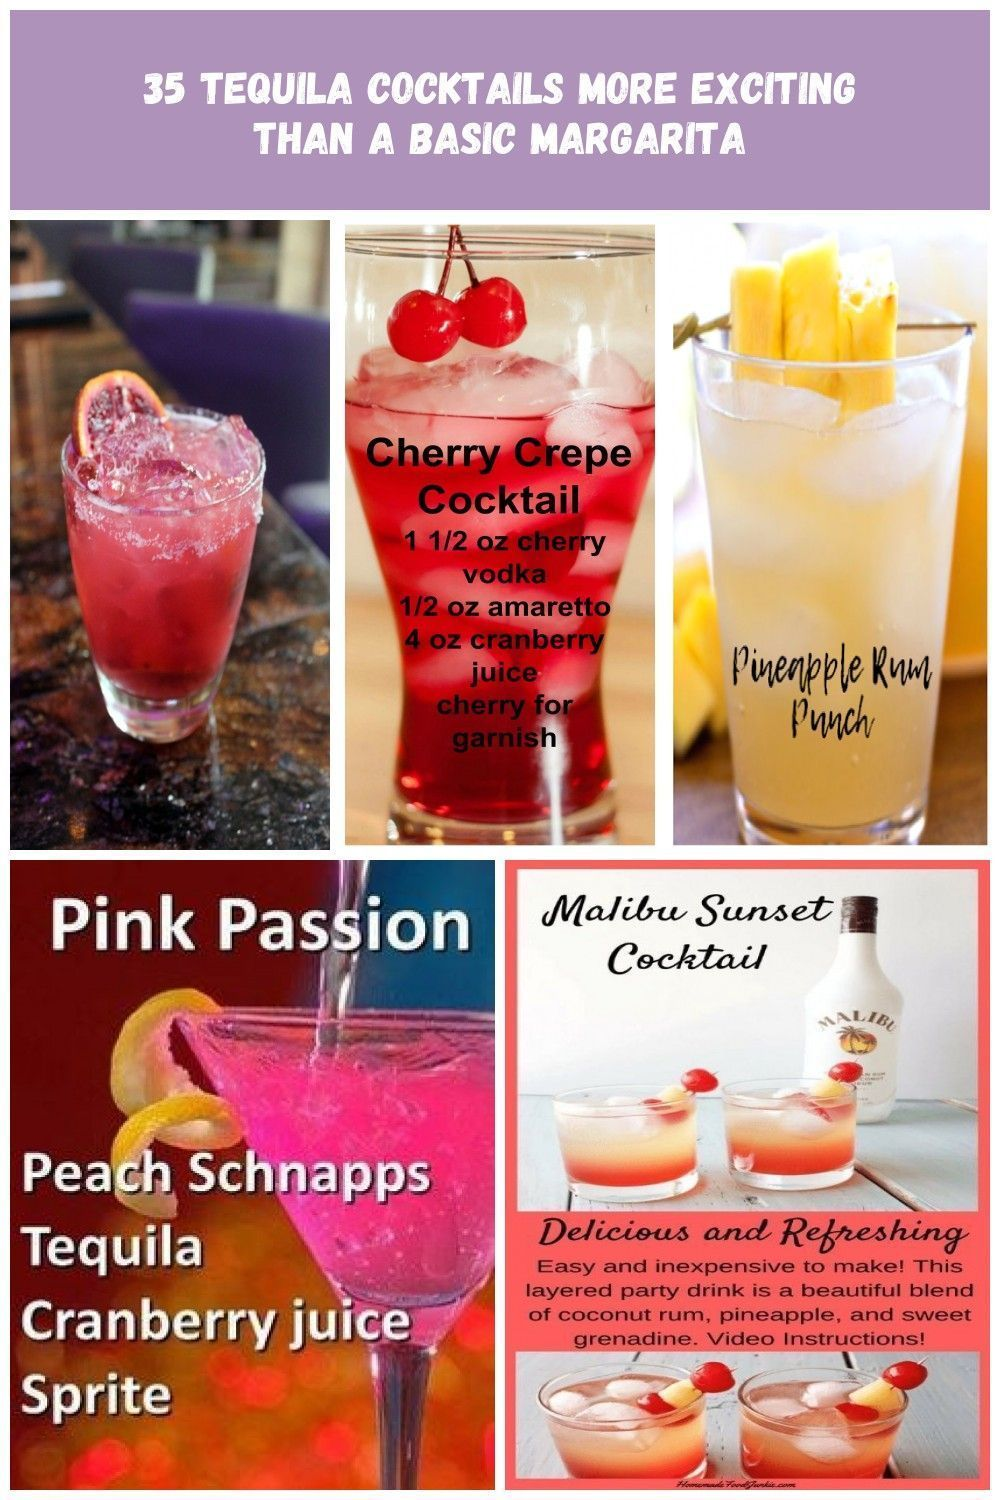 35 Best Tequila Cocktails 2018 Easy Simple Tequila Mix Drink Recipes Drink Re 35 Best Tequ In 2020 Mixed Drinks Recipes Tequila Cocktails Drinks Alcohol Recipes